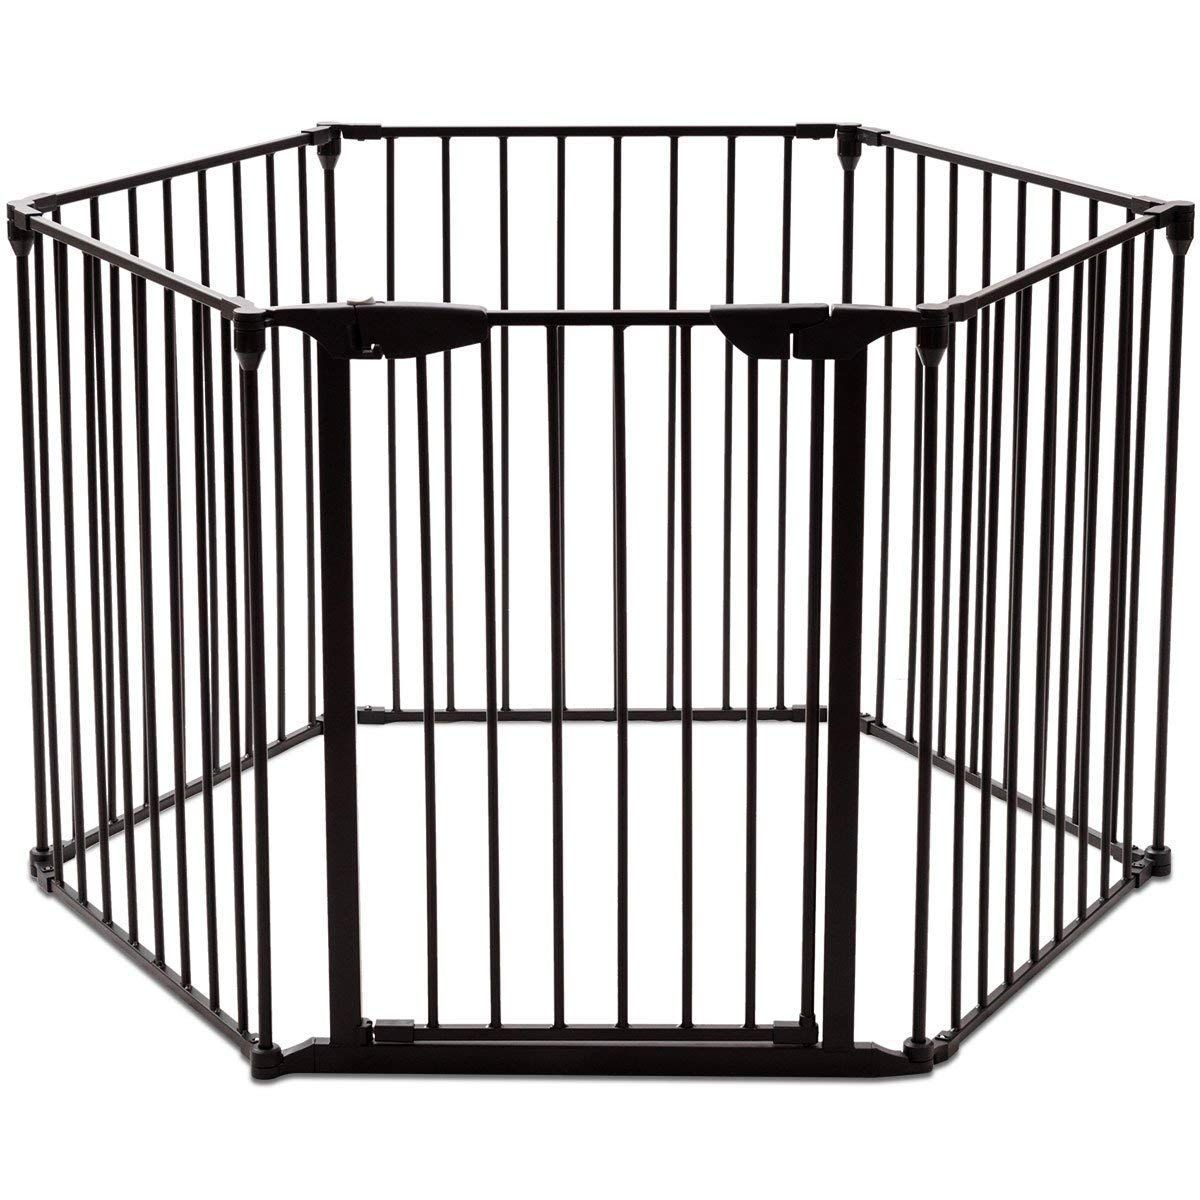 Petsjoy 6 Panels Baby Safety Gate 5in1 Fireplace Fence Wide